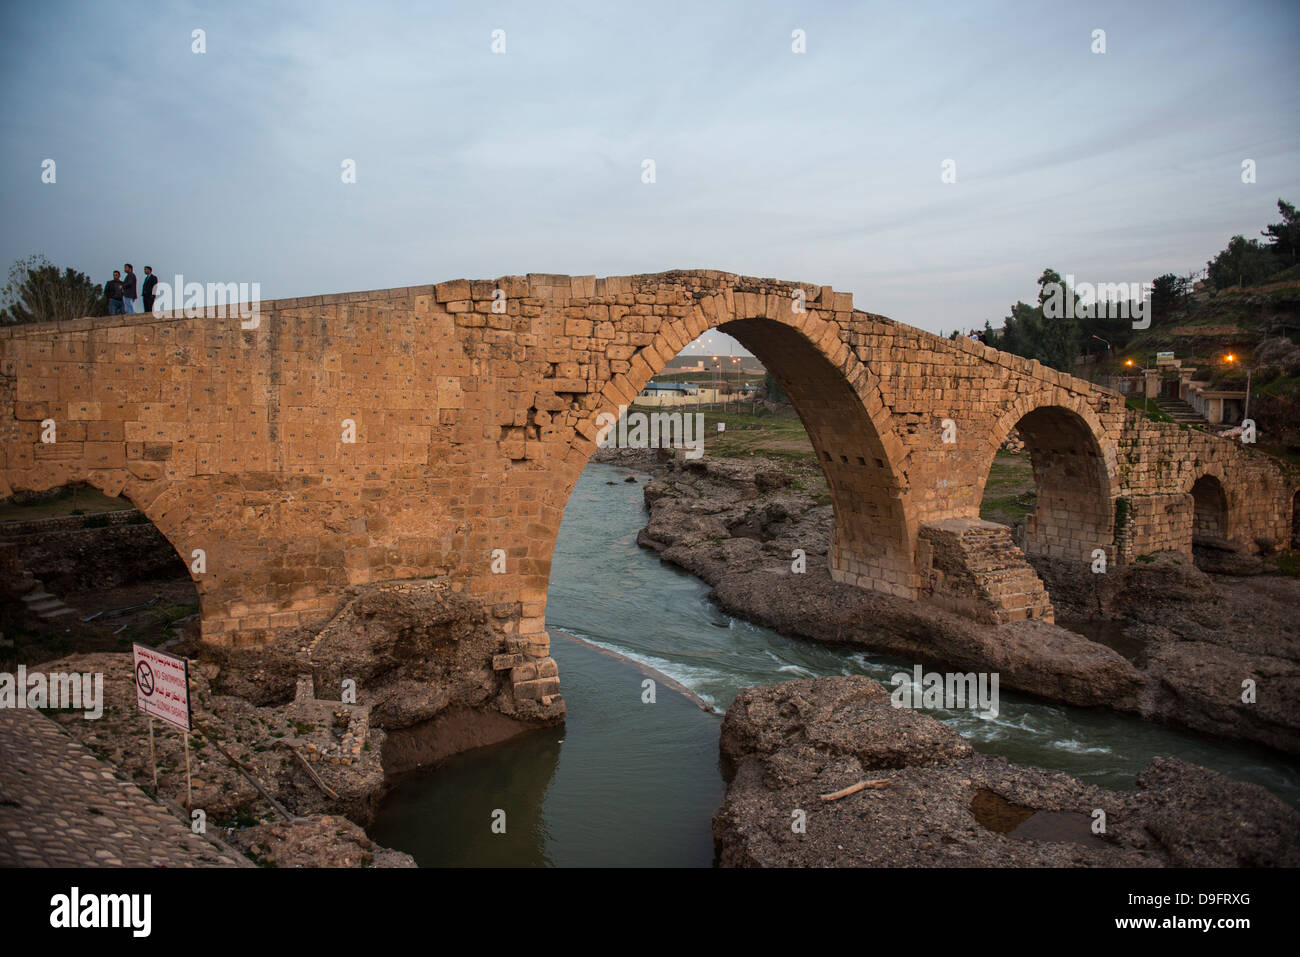 The Dalai bridge from the time of the Abbasids in Zakho on the border of Turkey, Iraq Kurdistan, Iraq, Middle East - Stock Image